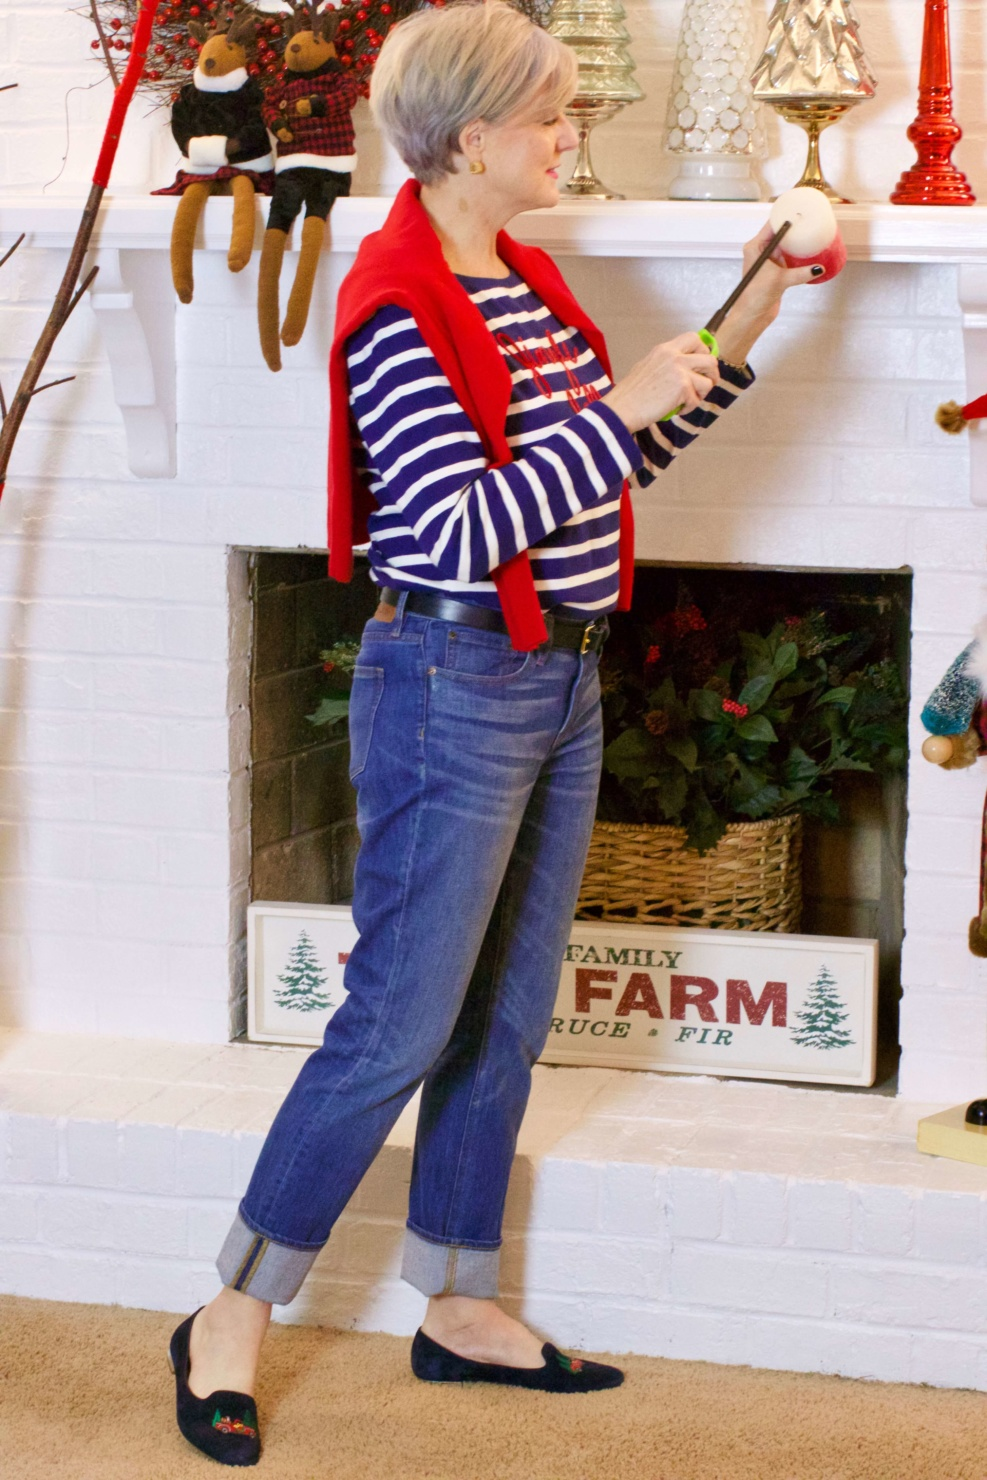 beth from Style at a Certain Age wears a Talbots jingle belle striped tee, J.Crew jeans, and embroidered smoking slippers